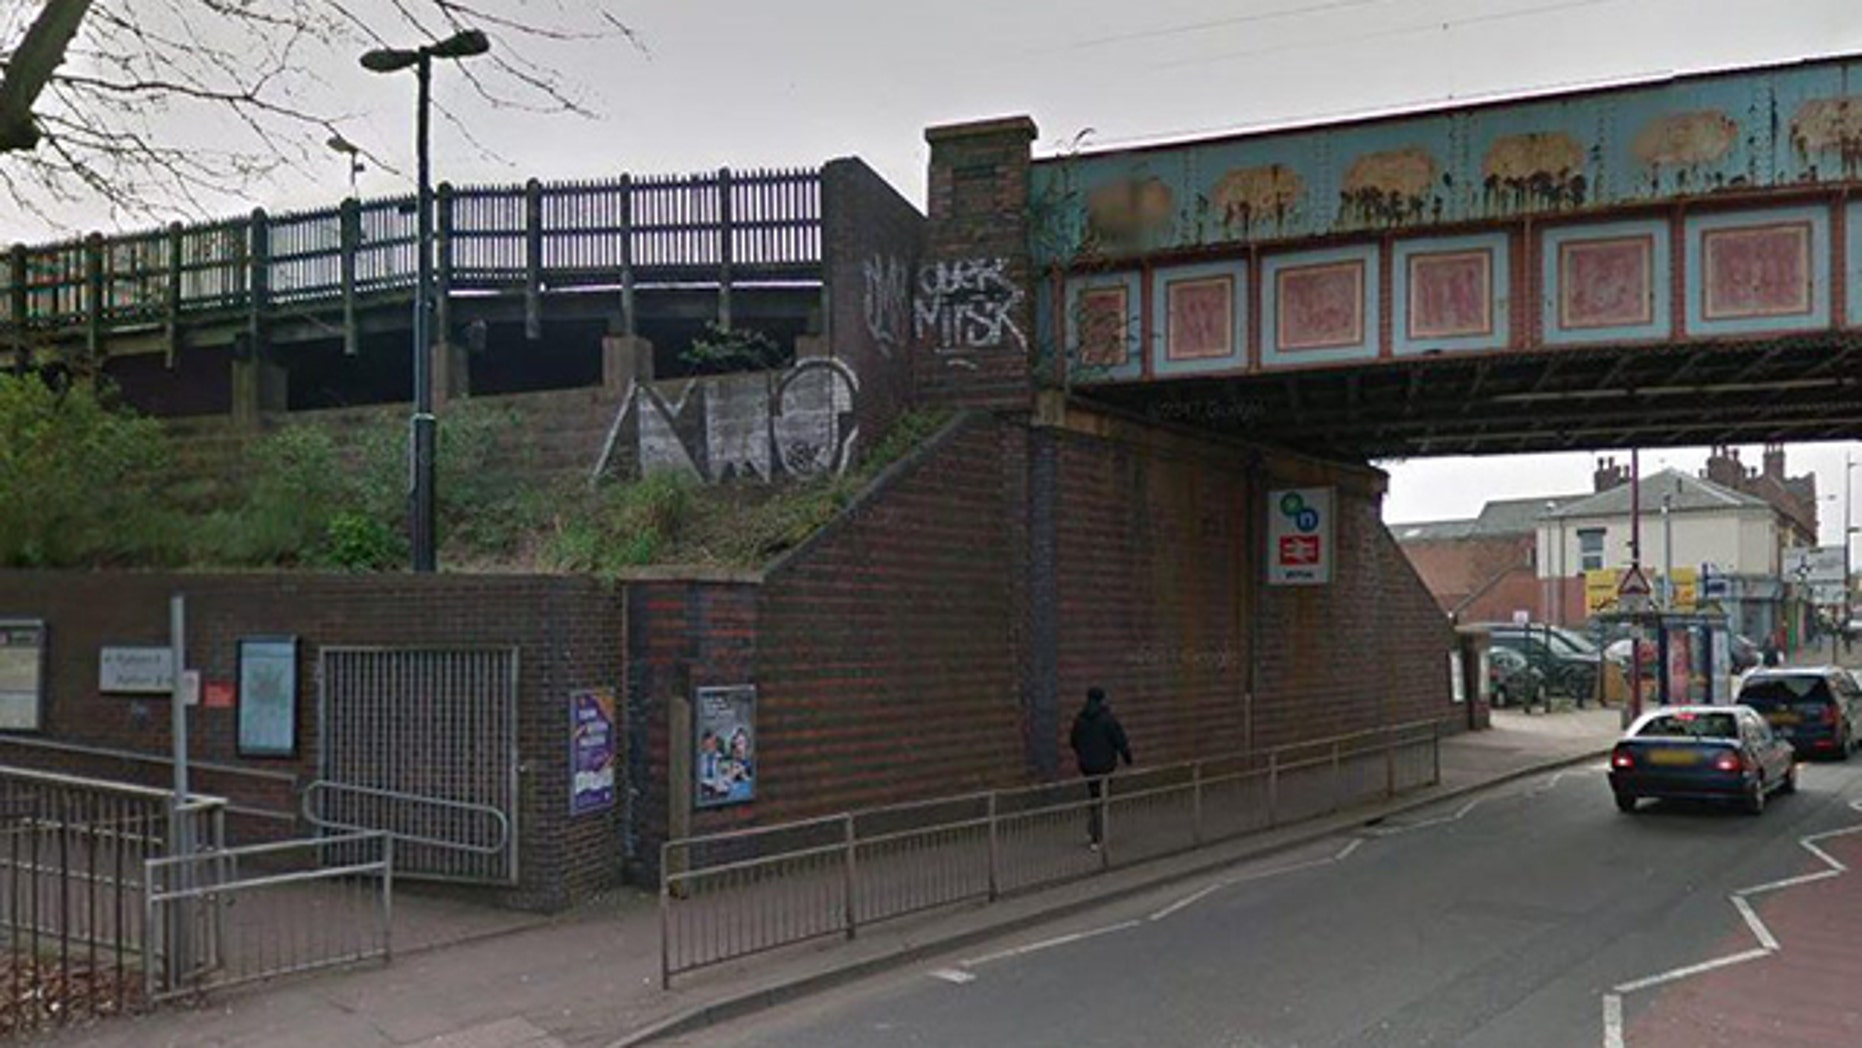 Police say a 15-year-old girl was raped at this train station in Birmingham, England.